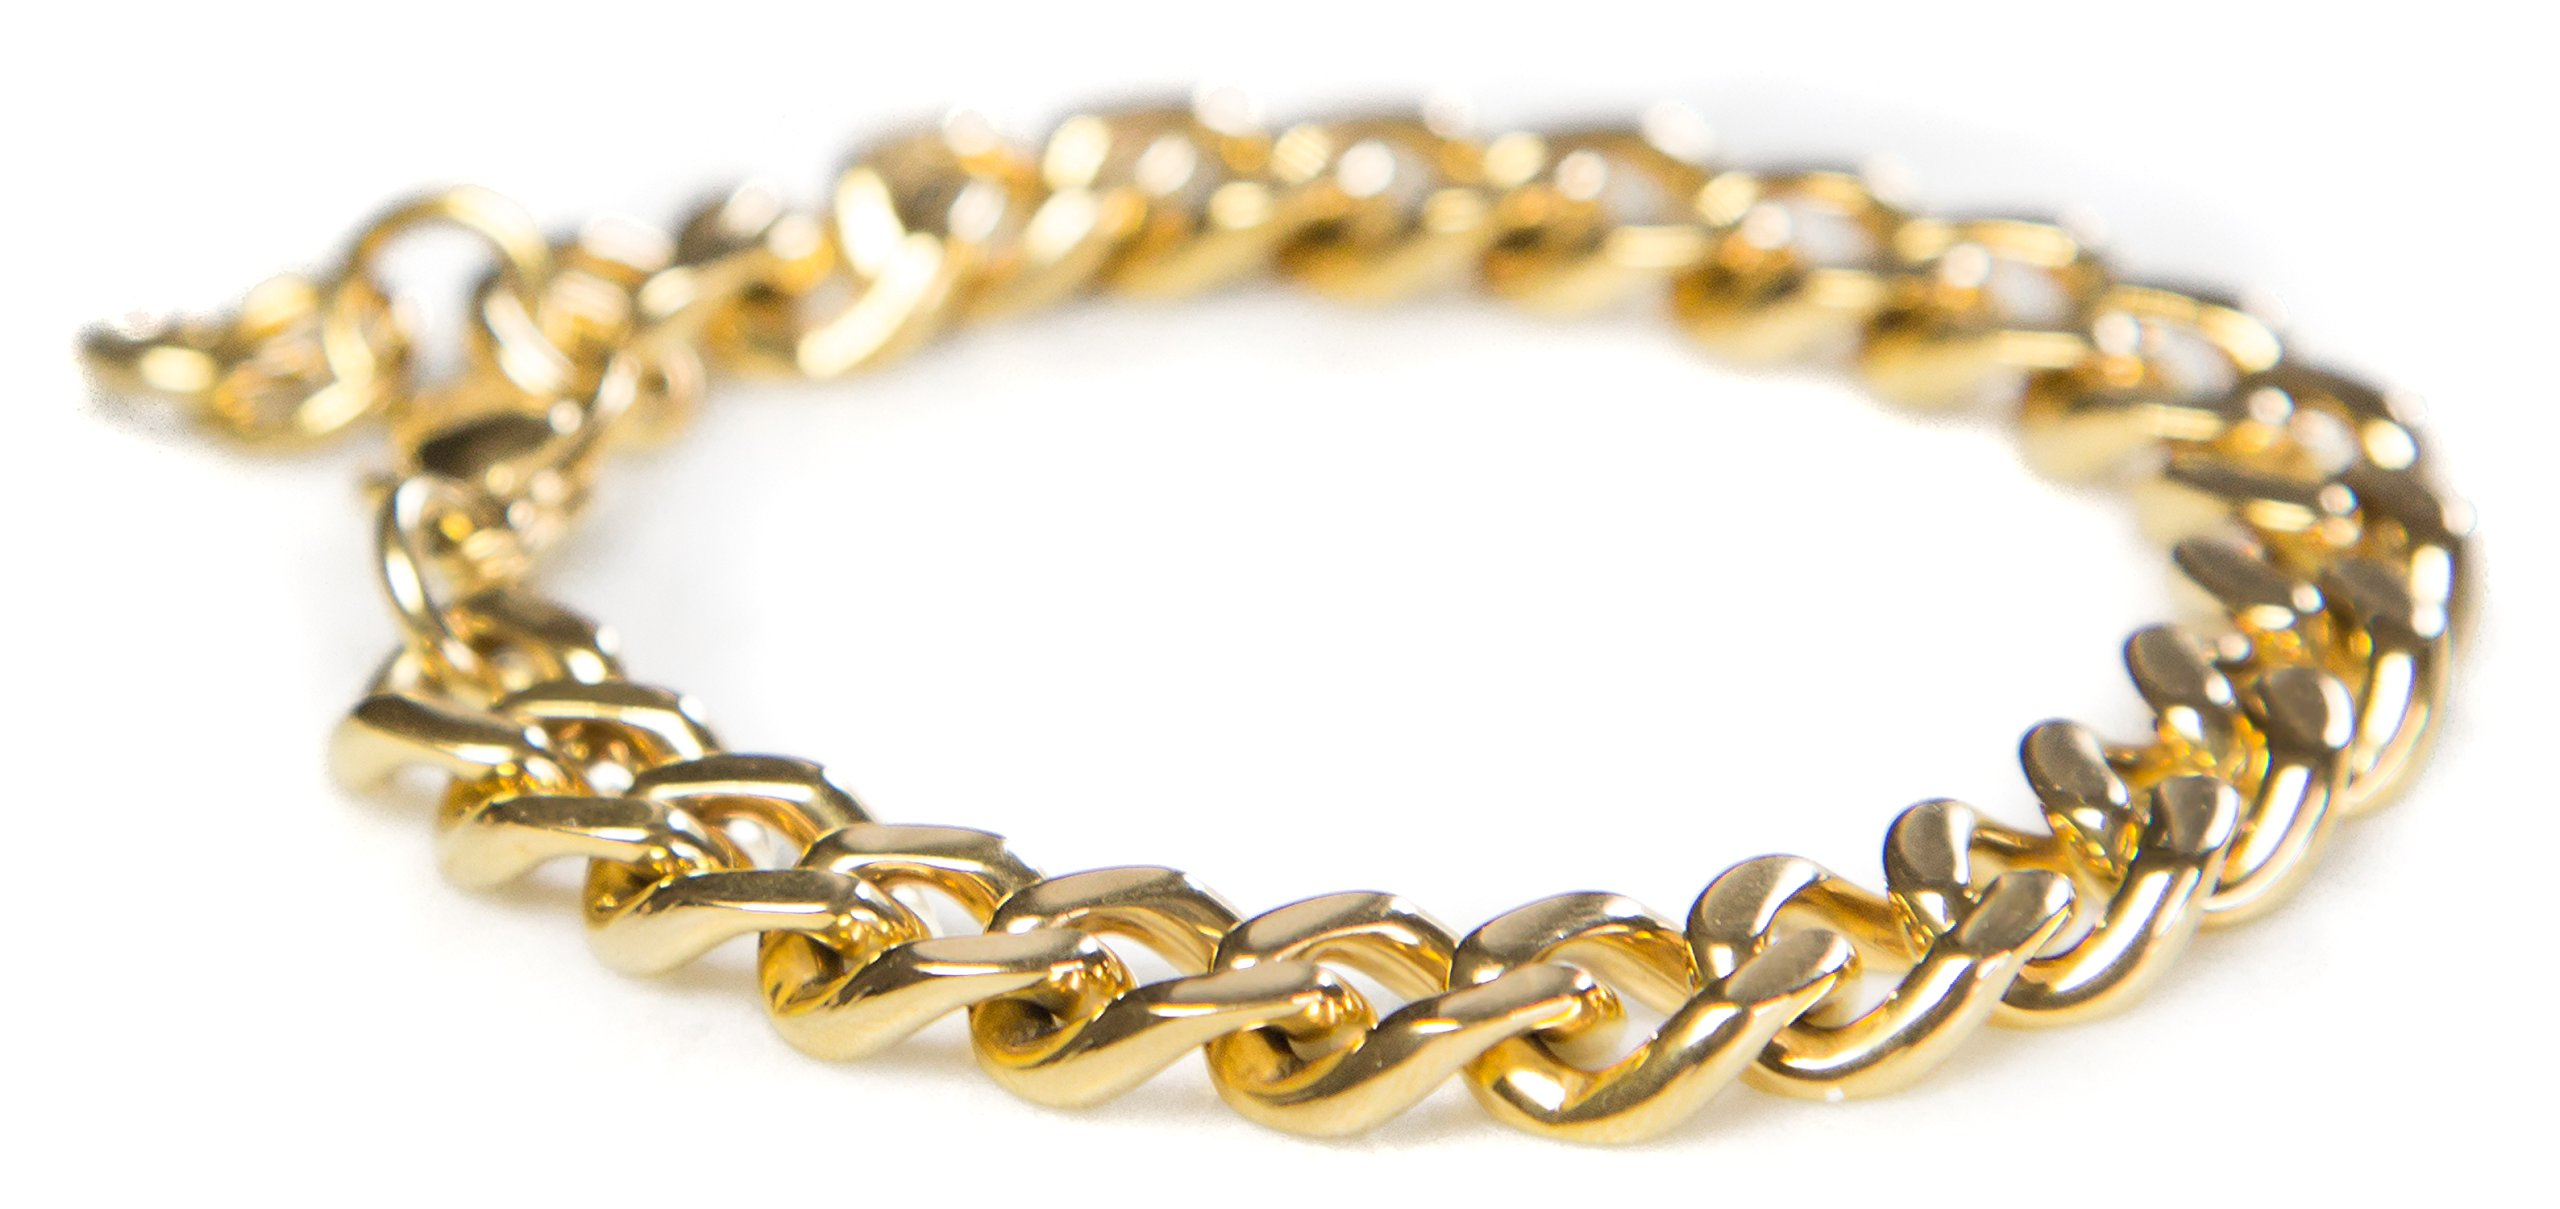 Chain Bracelets for Women: 14k Gold Dipped Stainless Steel Curb Chains Jewelry for teens women for Charity